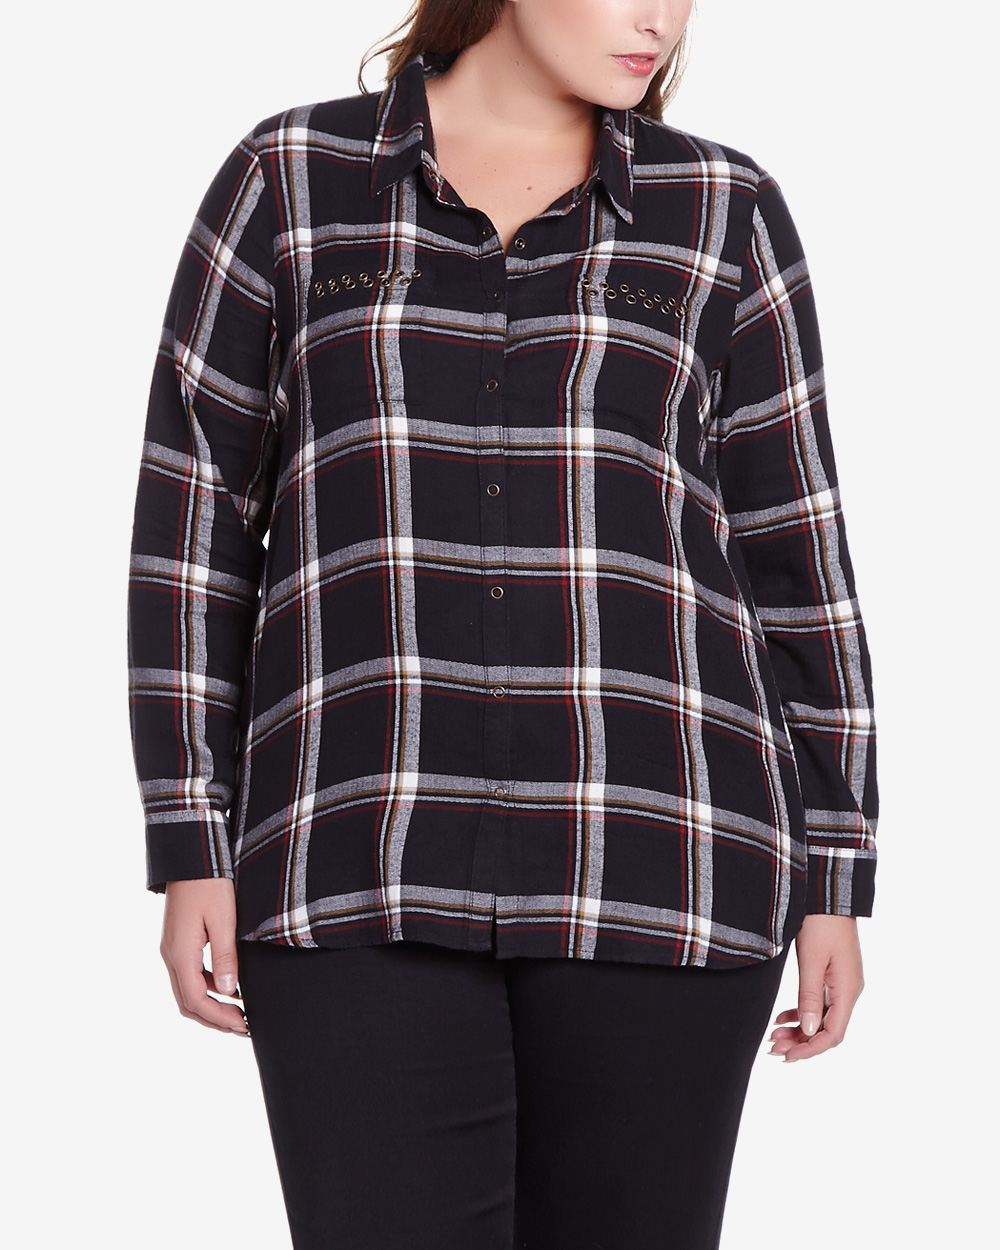 Plus Size Long Sleeve Plaid Shirt Plus Sizes Reitmans